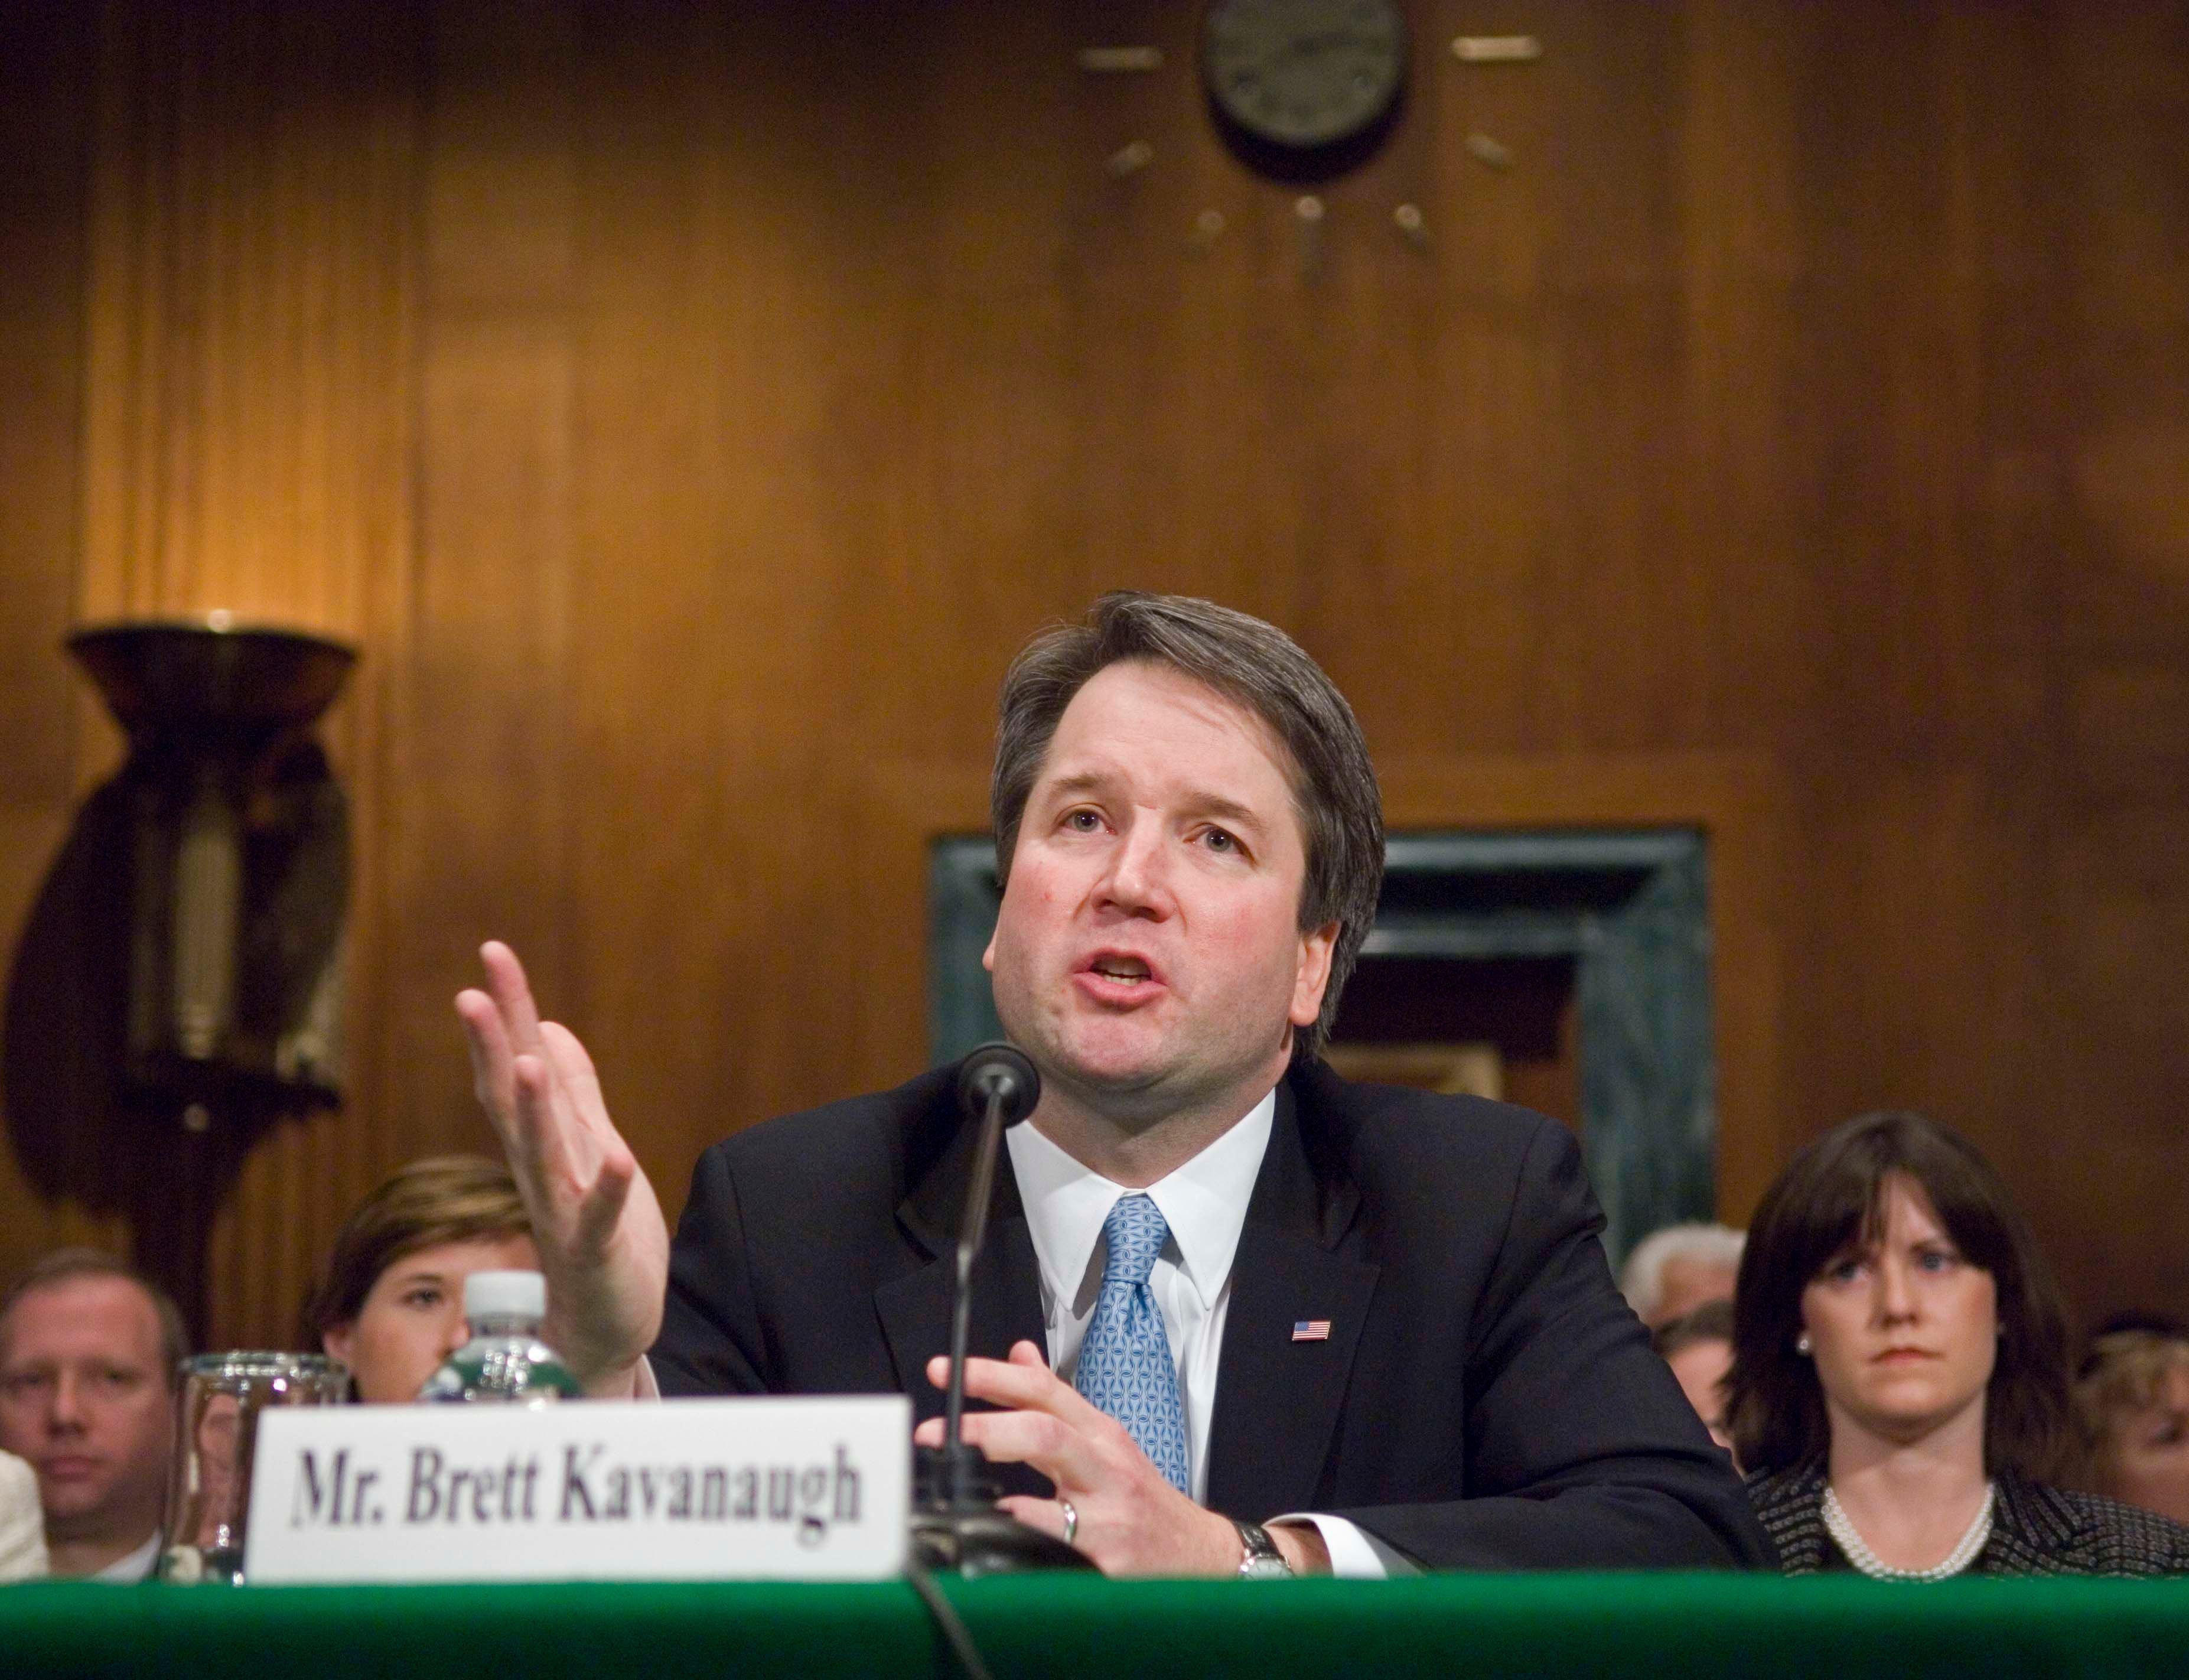 Brett Kavanaugh last appeared before the Senate Judiciary Committee fora confirmation hearing in late April 2004 as Pre